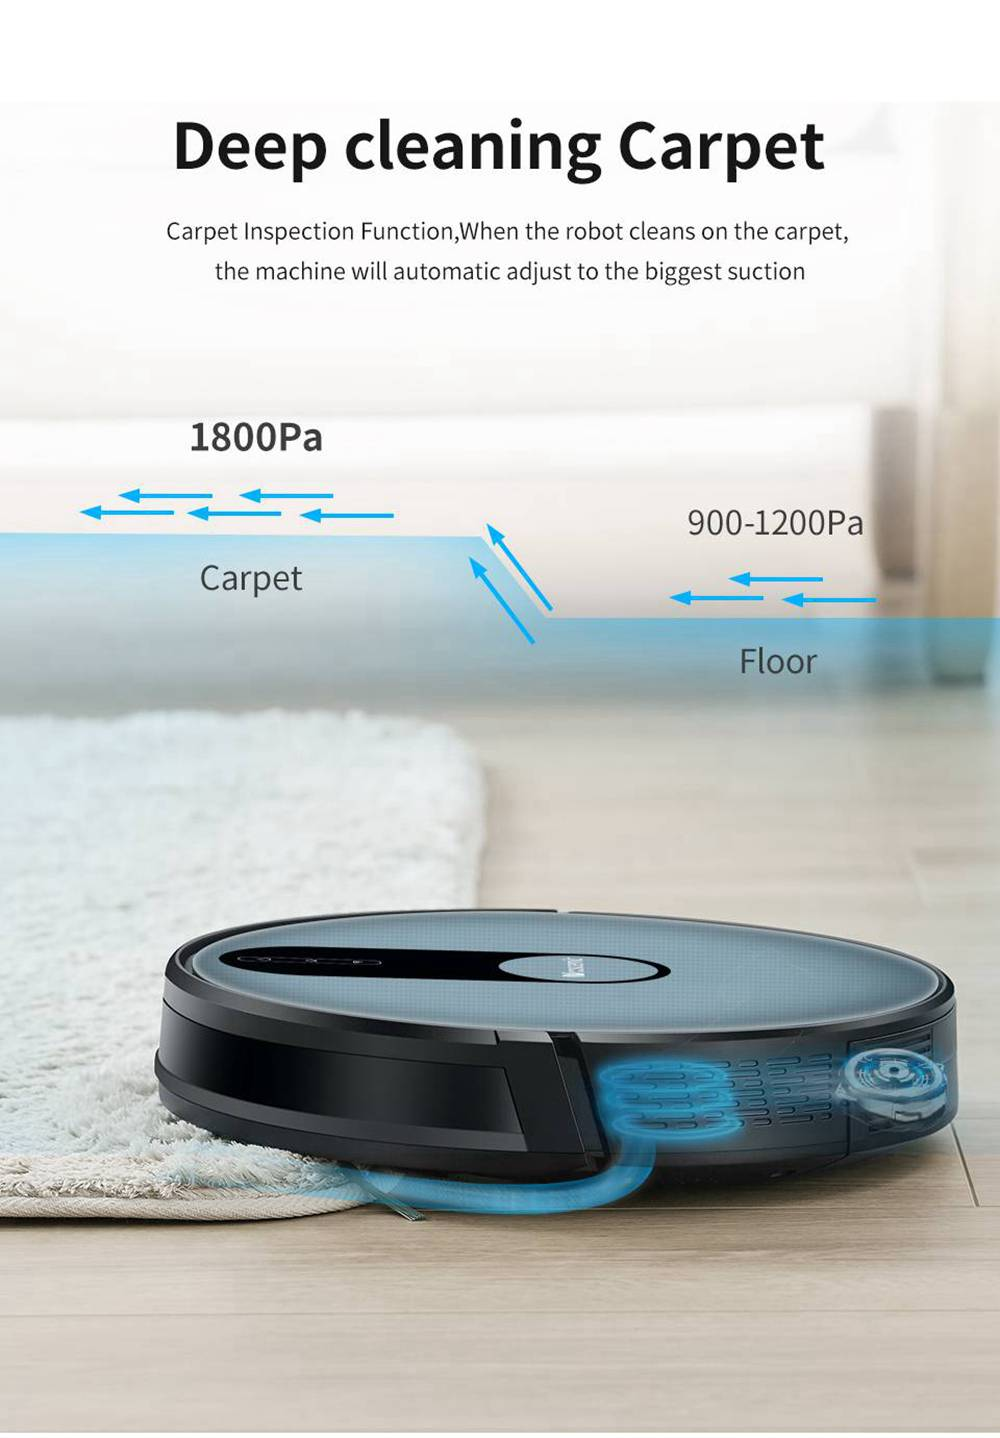 Proscenic 820P Robot Vacuum Cleaner 1800Pa Strong Suction Alexa and APP Control with Wet Cleaning Function - Black